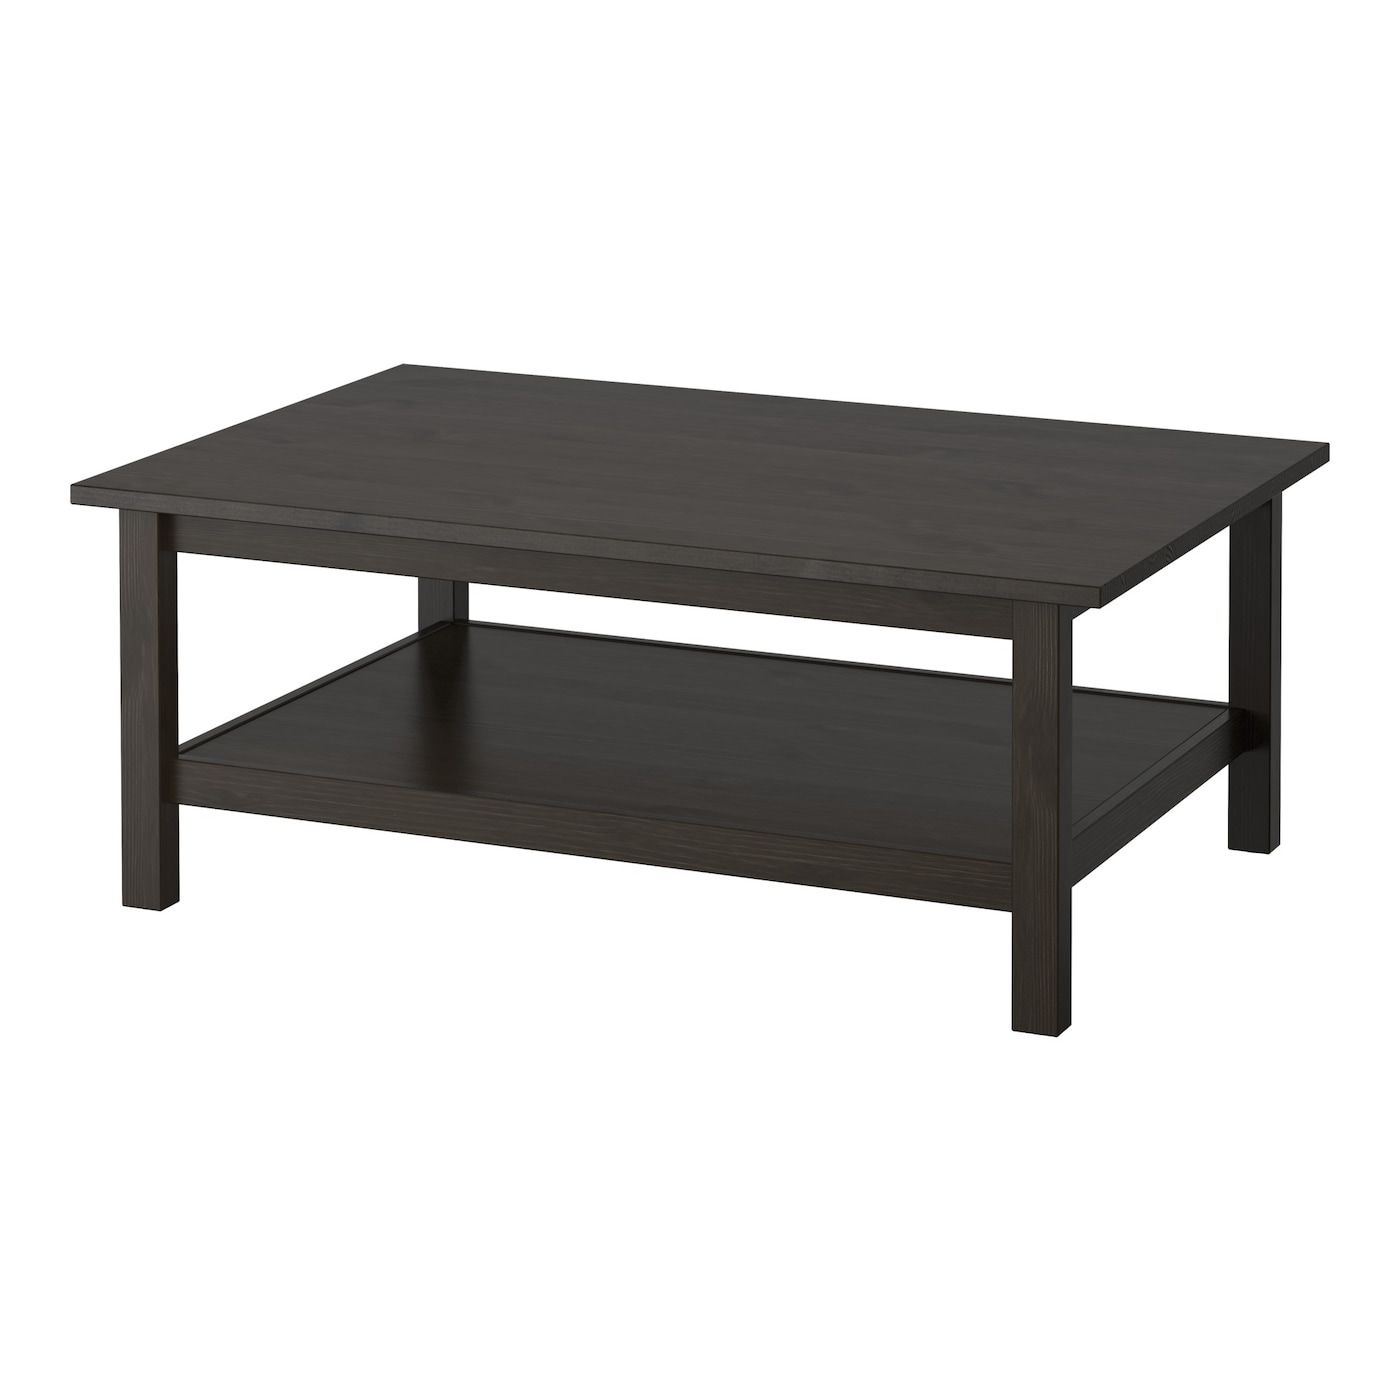 hemnes coffee table black-brown 118x75 cm - ikea